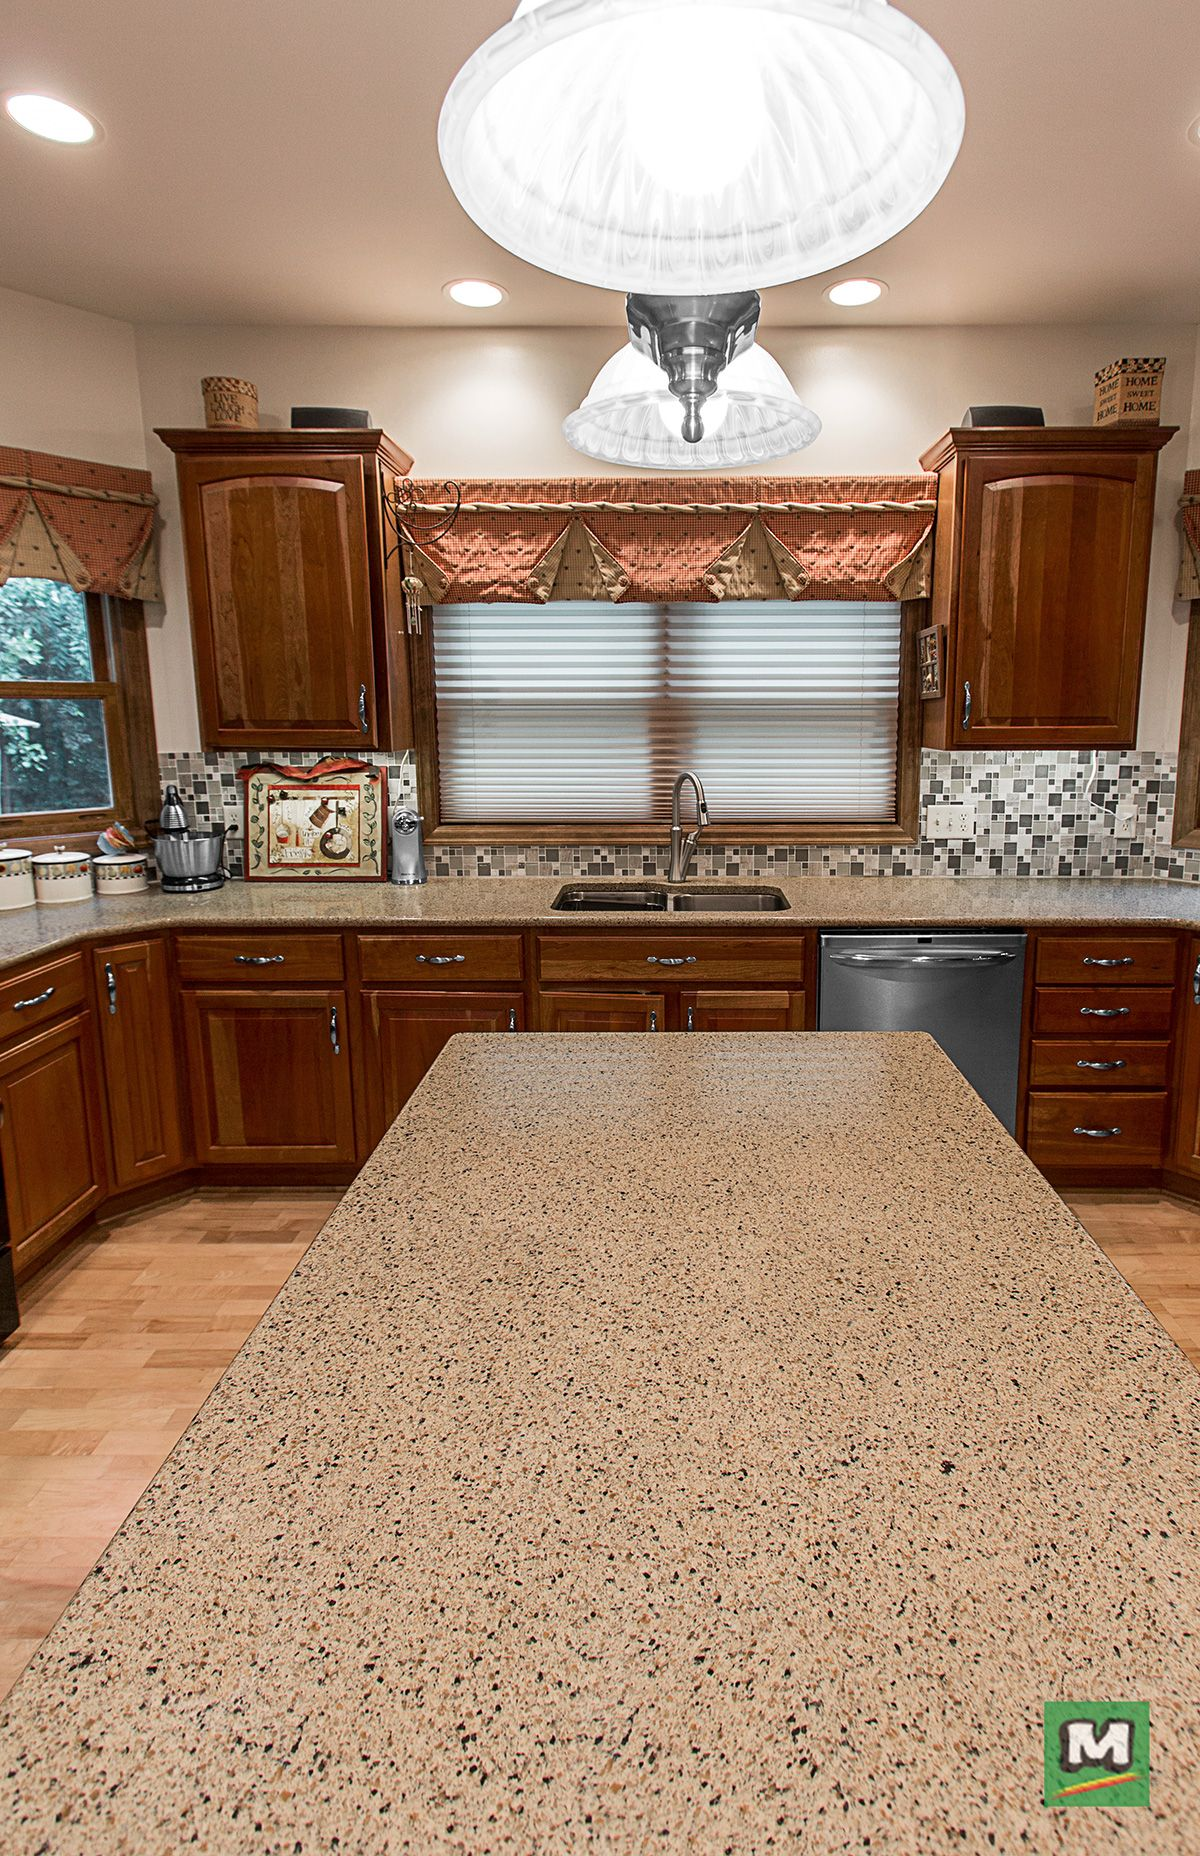 Available In 18 Vibrant Colors And 3 Diffe Edge Styles Riverstone Quartz Countertops Are